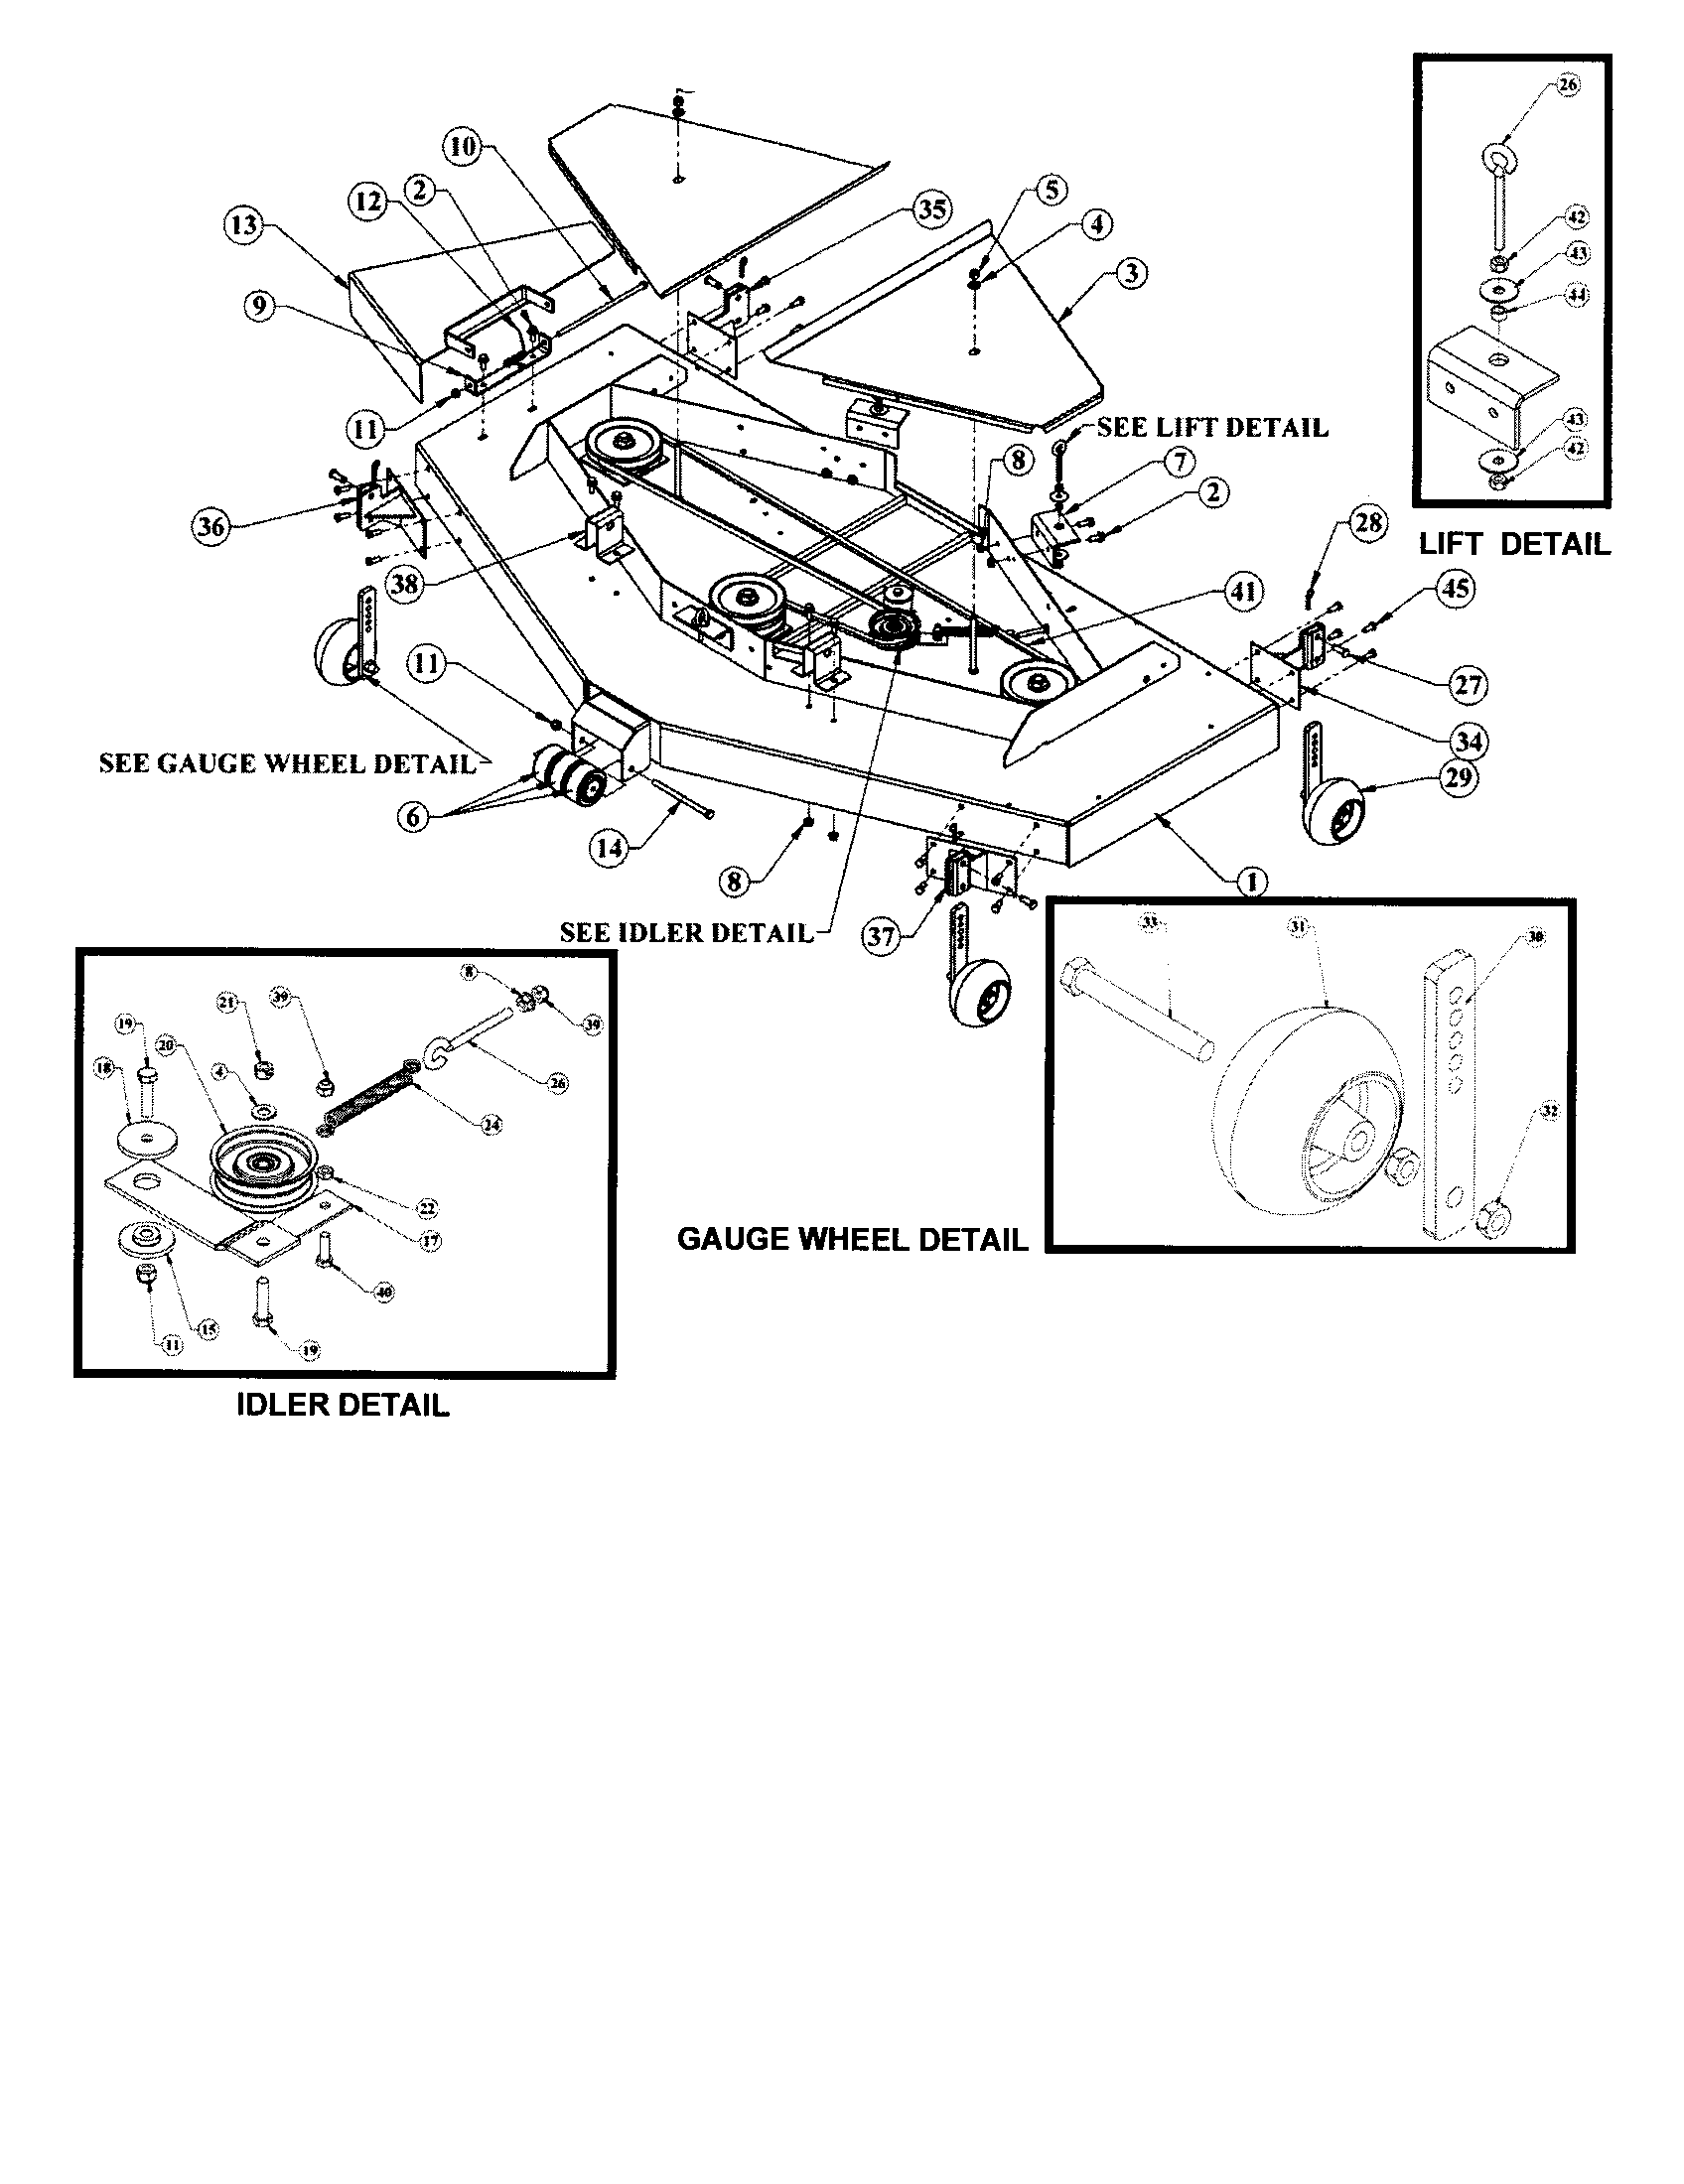 Wiring Diagram For Swisher Mower